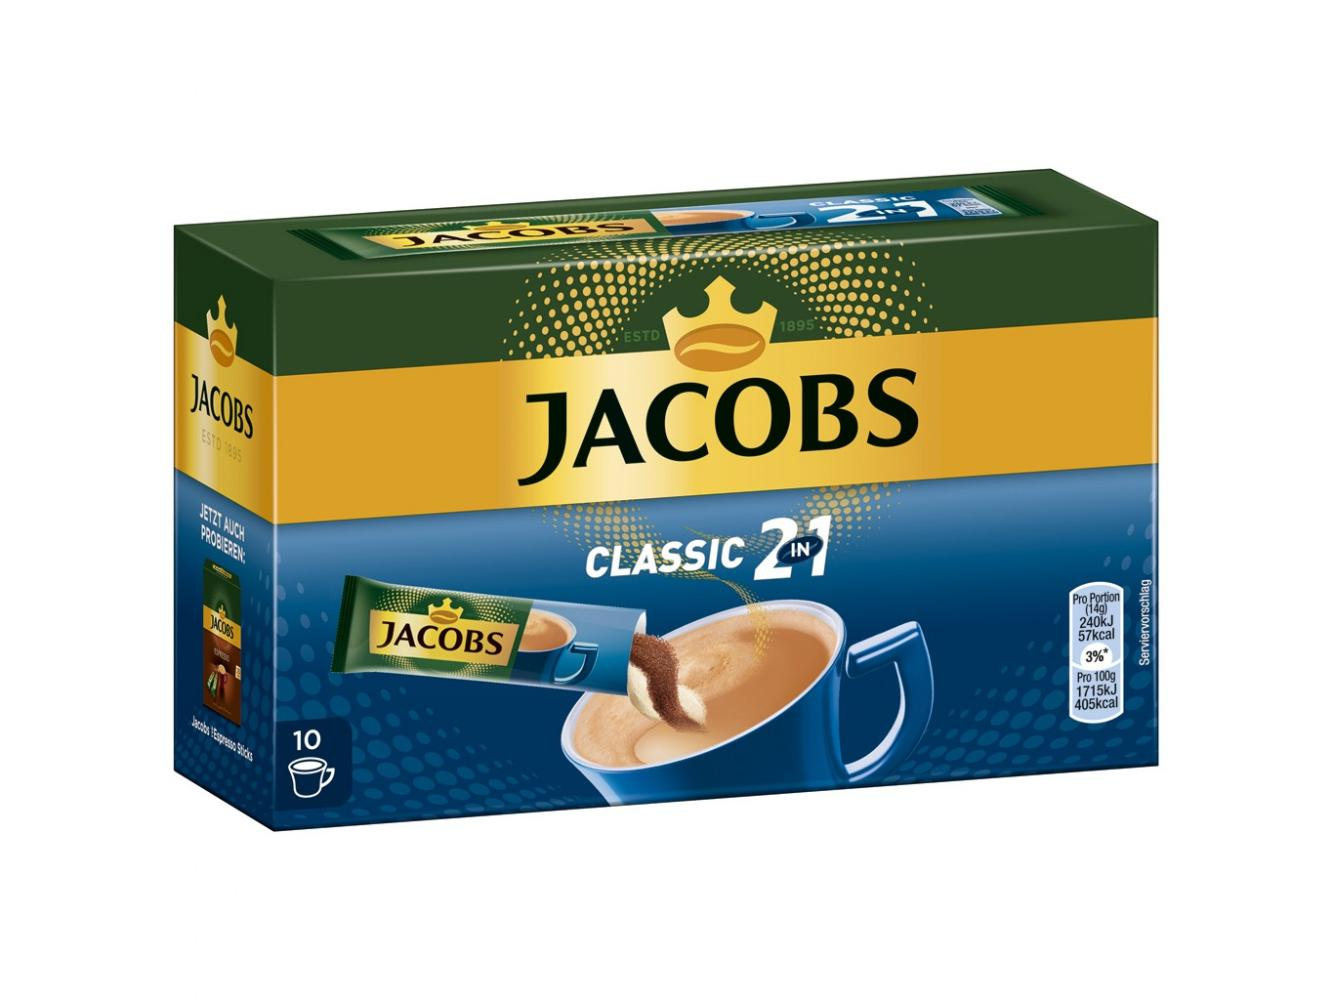 Jacobs 2 in 1 Classic